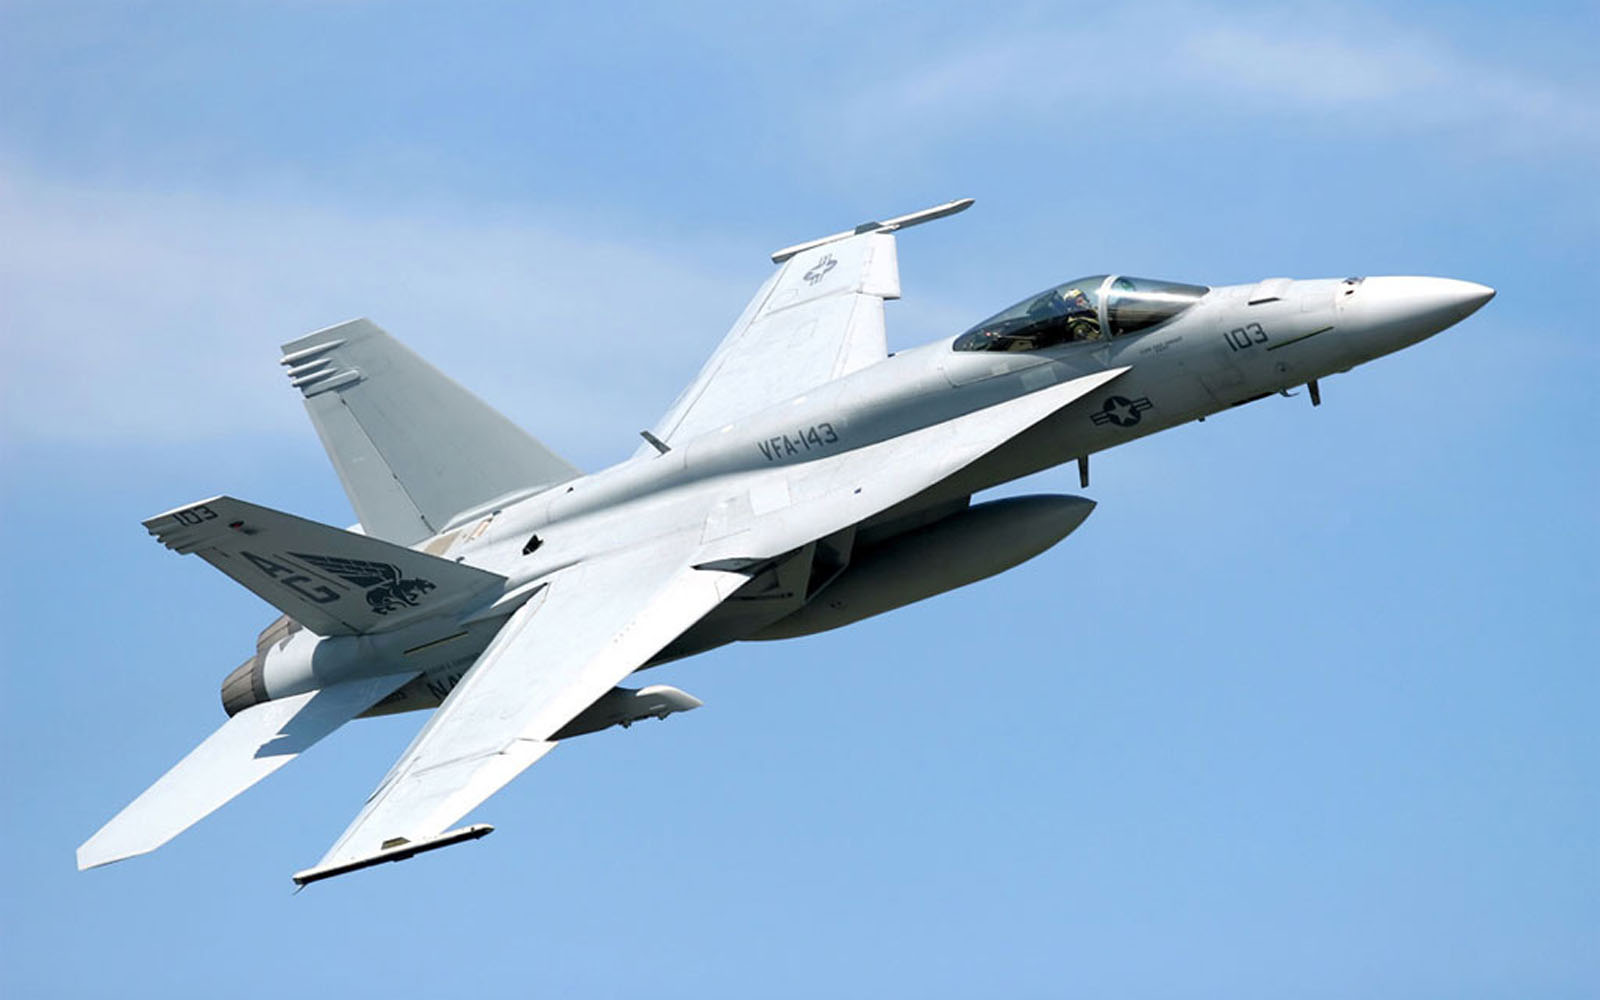 wallpapers f a 18f super hornet aircraft wallpapers. Black Bedroom Furniture Sets. Home Design Ideas